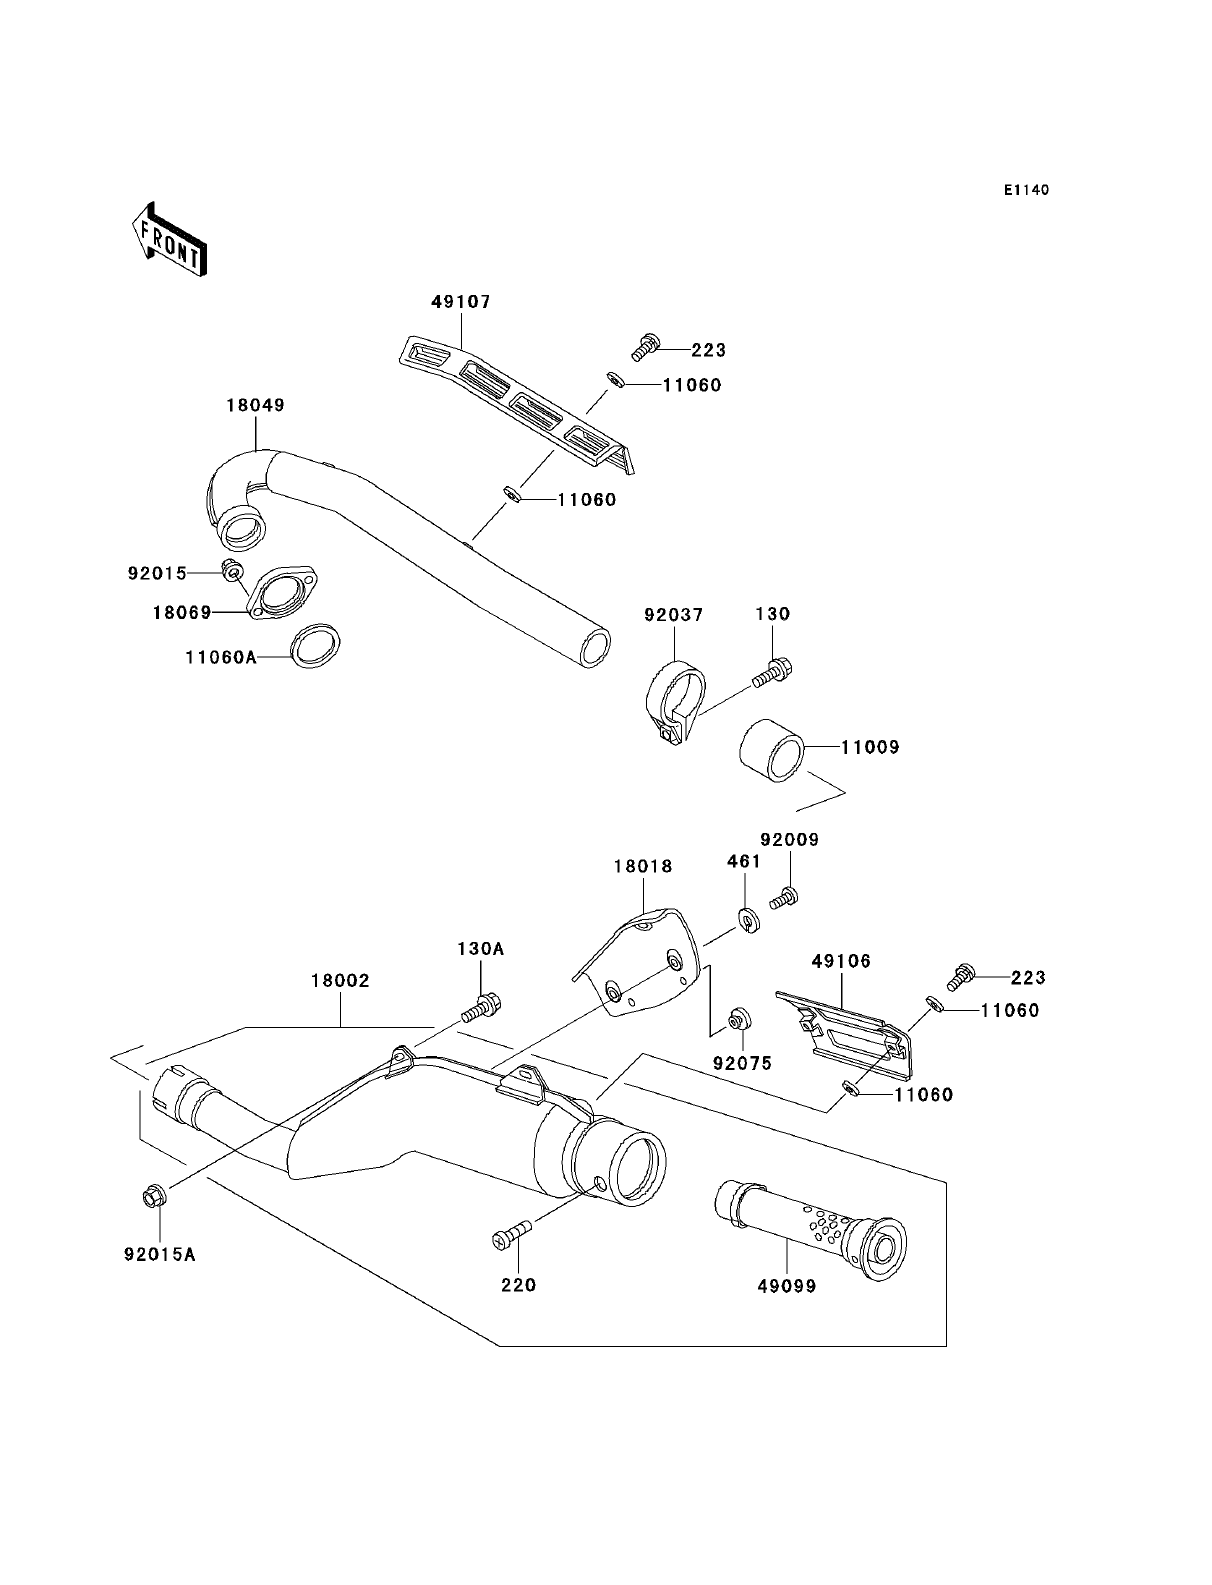 66 Mustang Ignition Wiring Diagram further Classic Mustang Wiring Harness likewise 1973 F250 Wiring Diagram additionally 1977 Pontiac Dash Wiring furthermore 1966 Ford Mustang Original Engine. on 1965 mustang neutral safety switch diagram